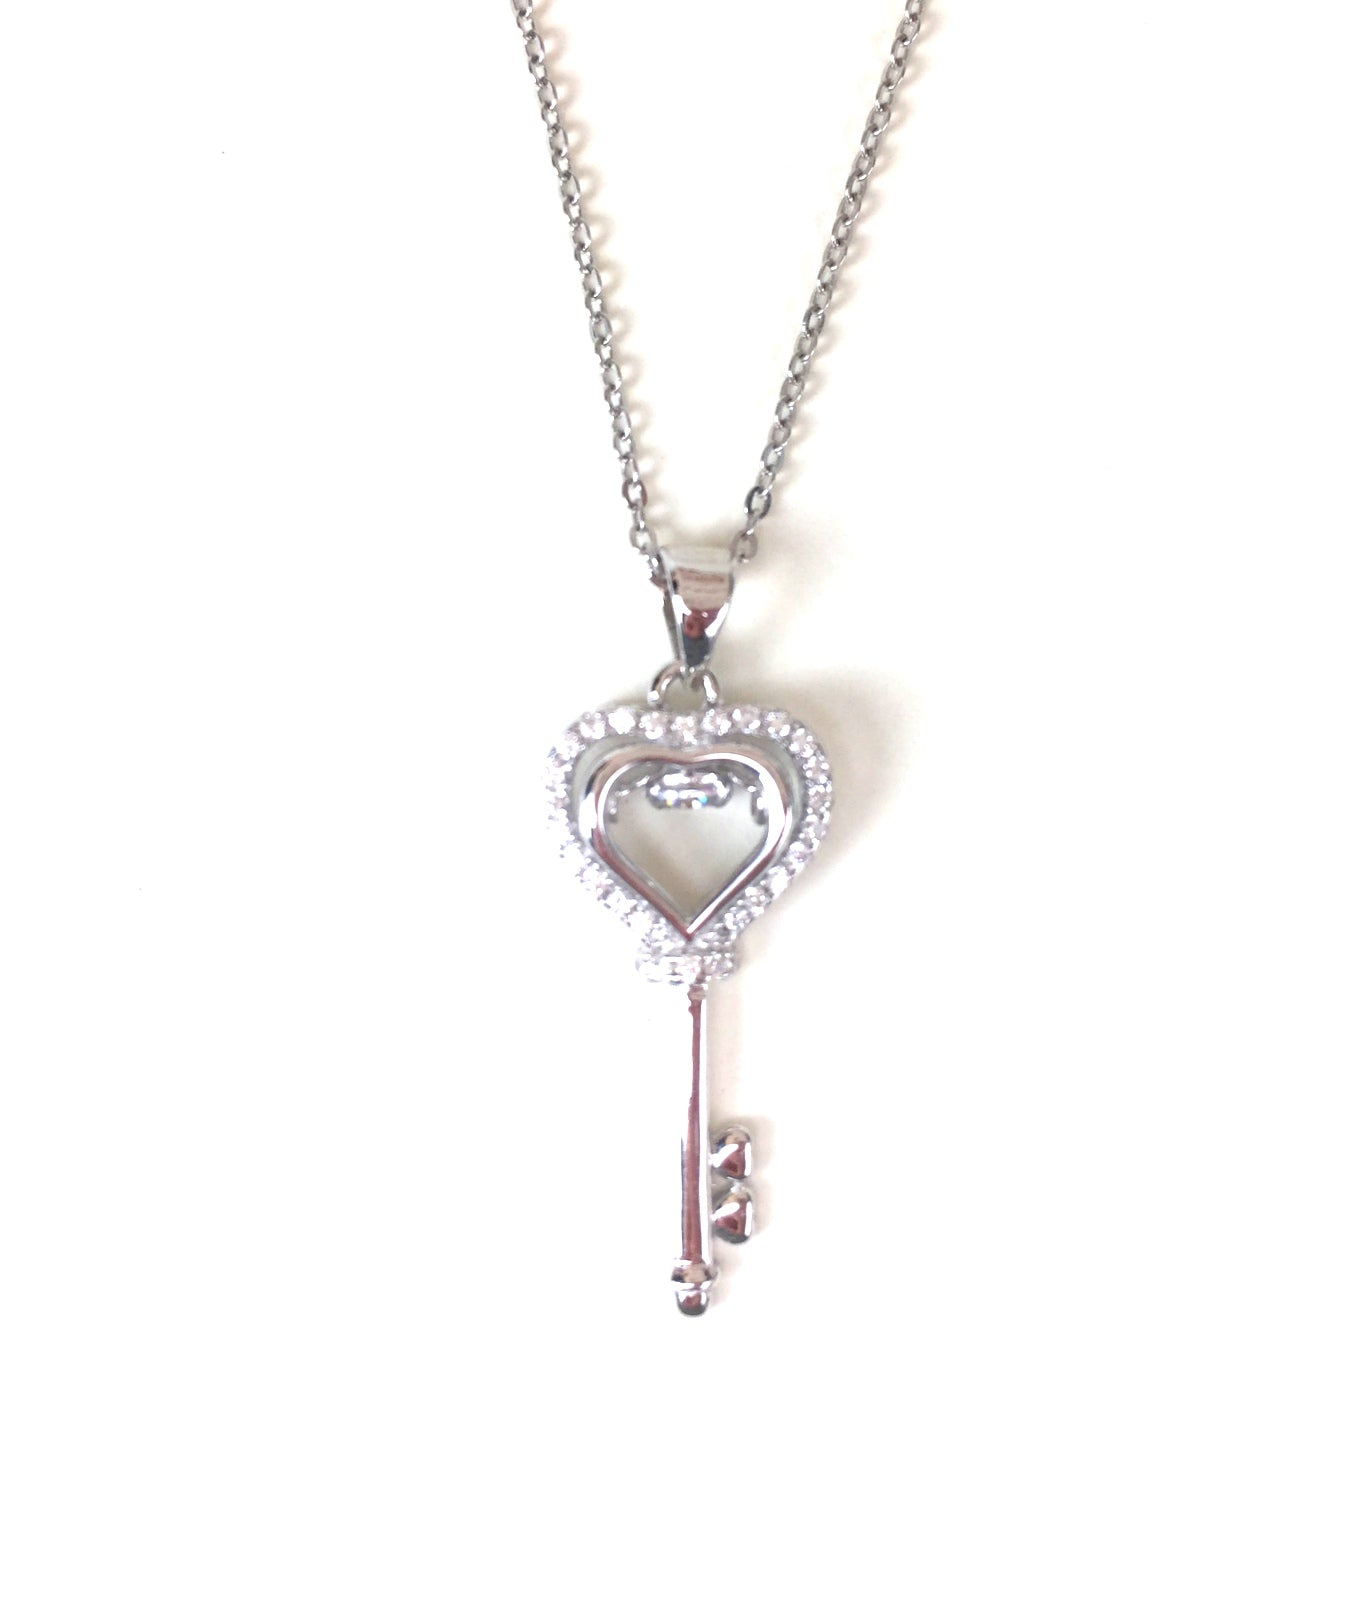 HEART KEY WITH STONE PAVE CZ STERLING SILVER NECKLACE